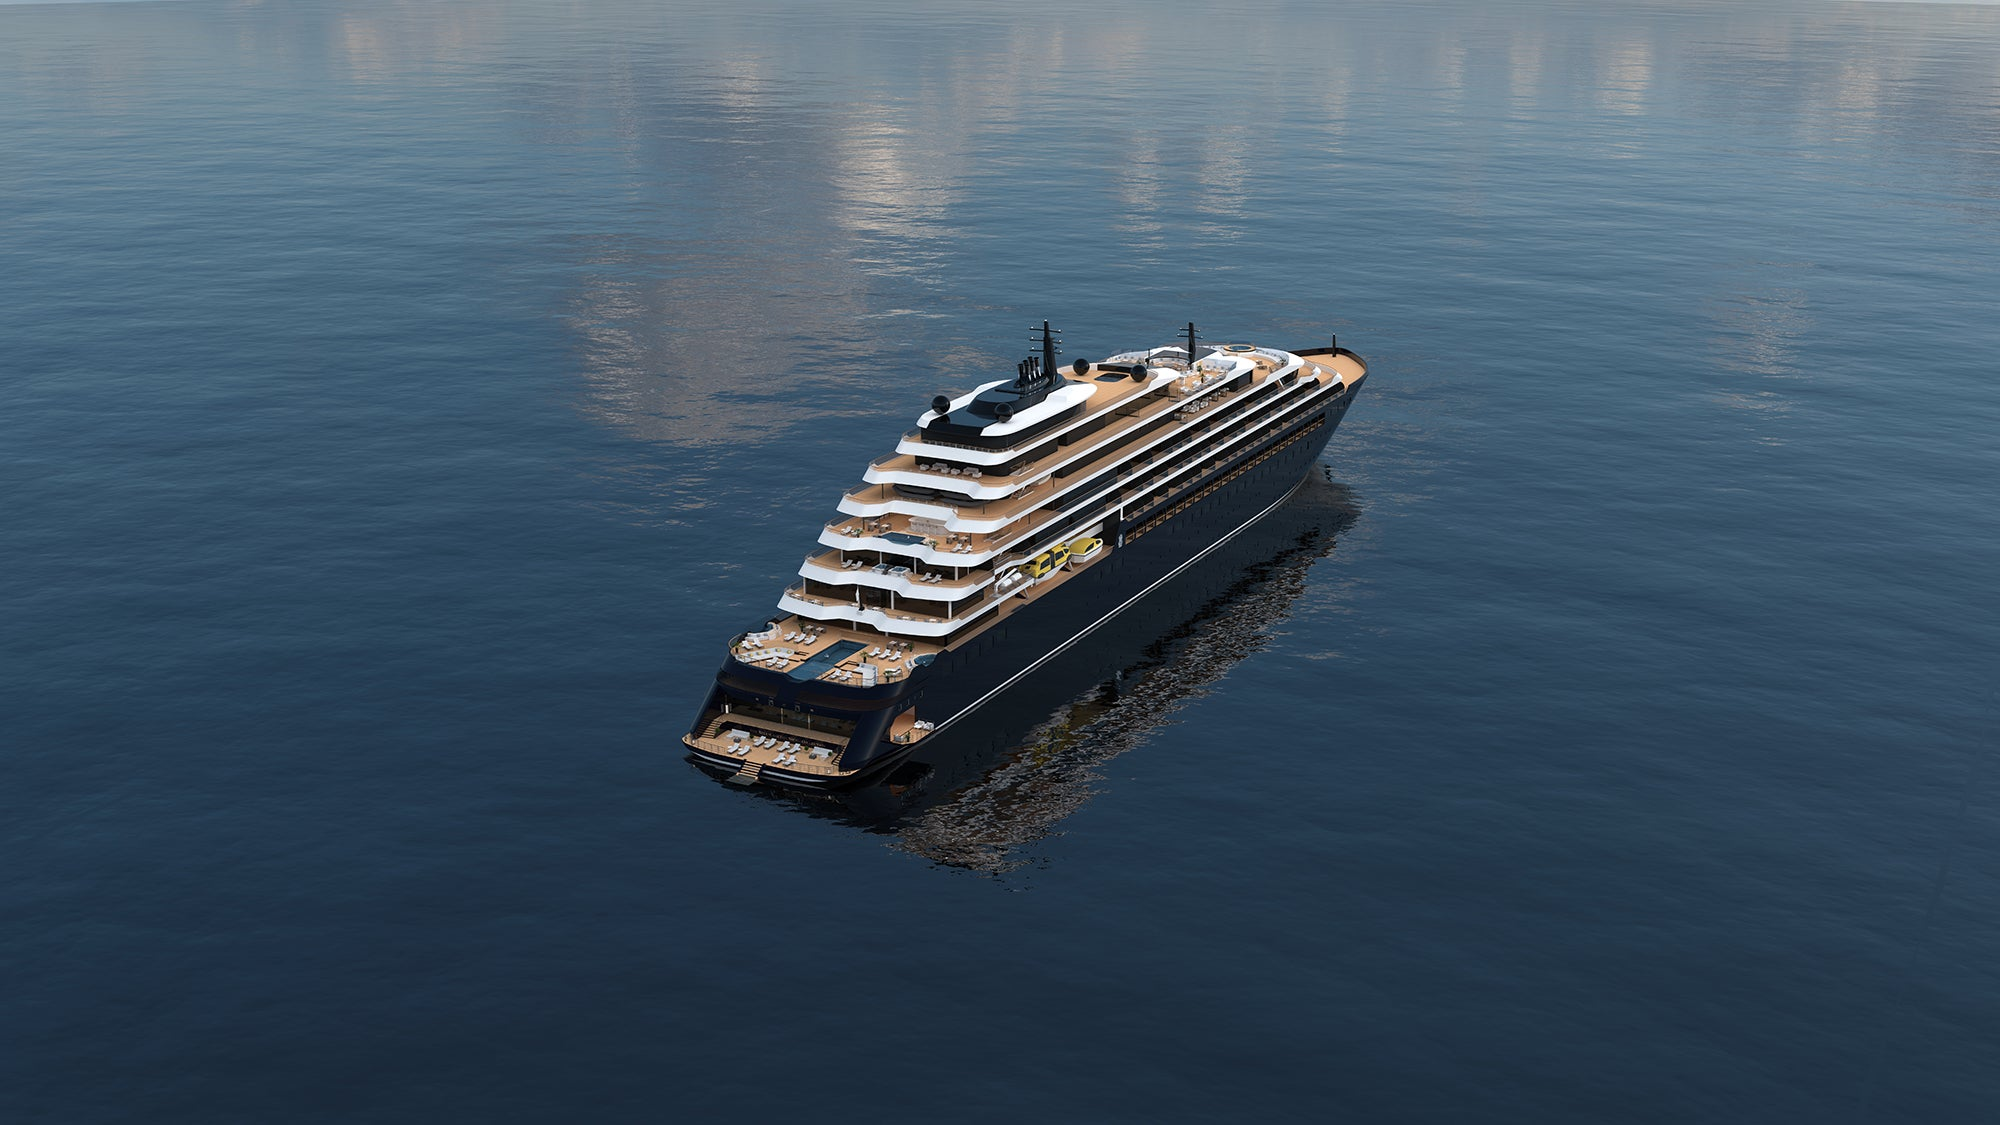 The launch of Ritz-Carlton's new cruise line is delayed yet again